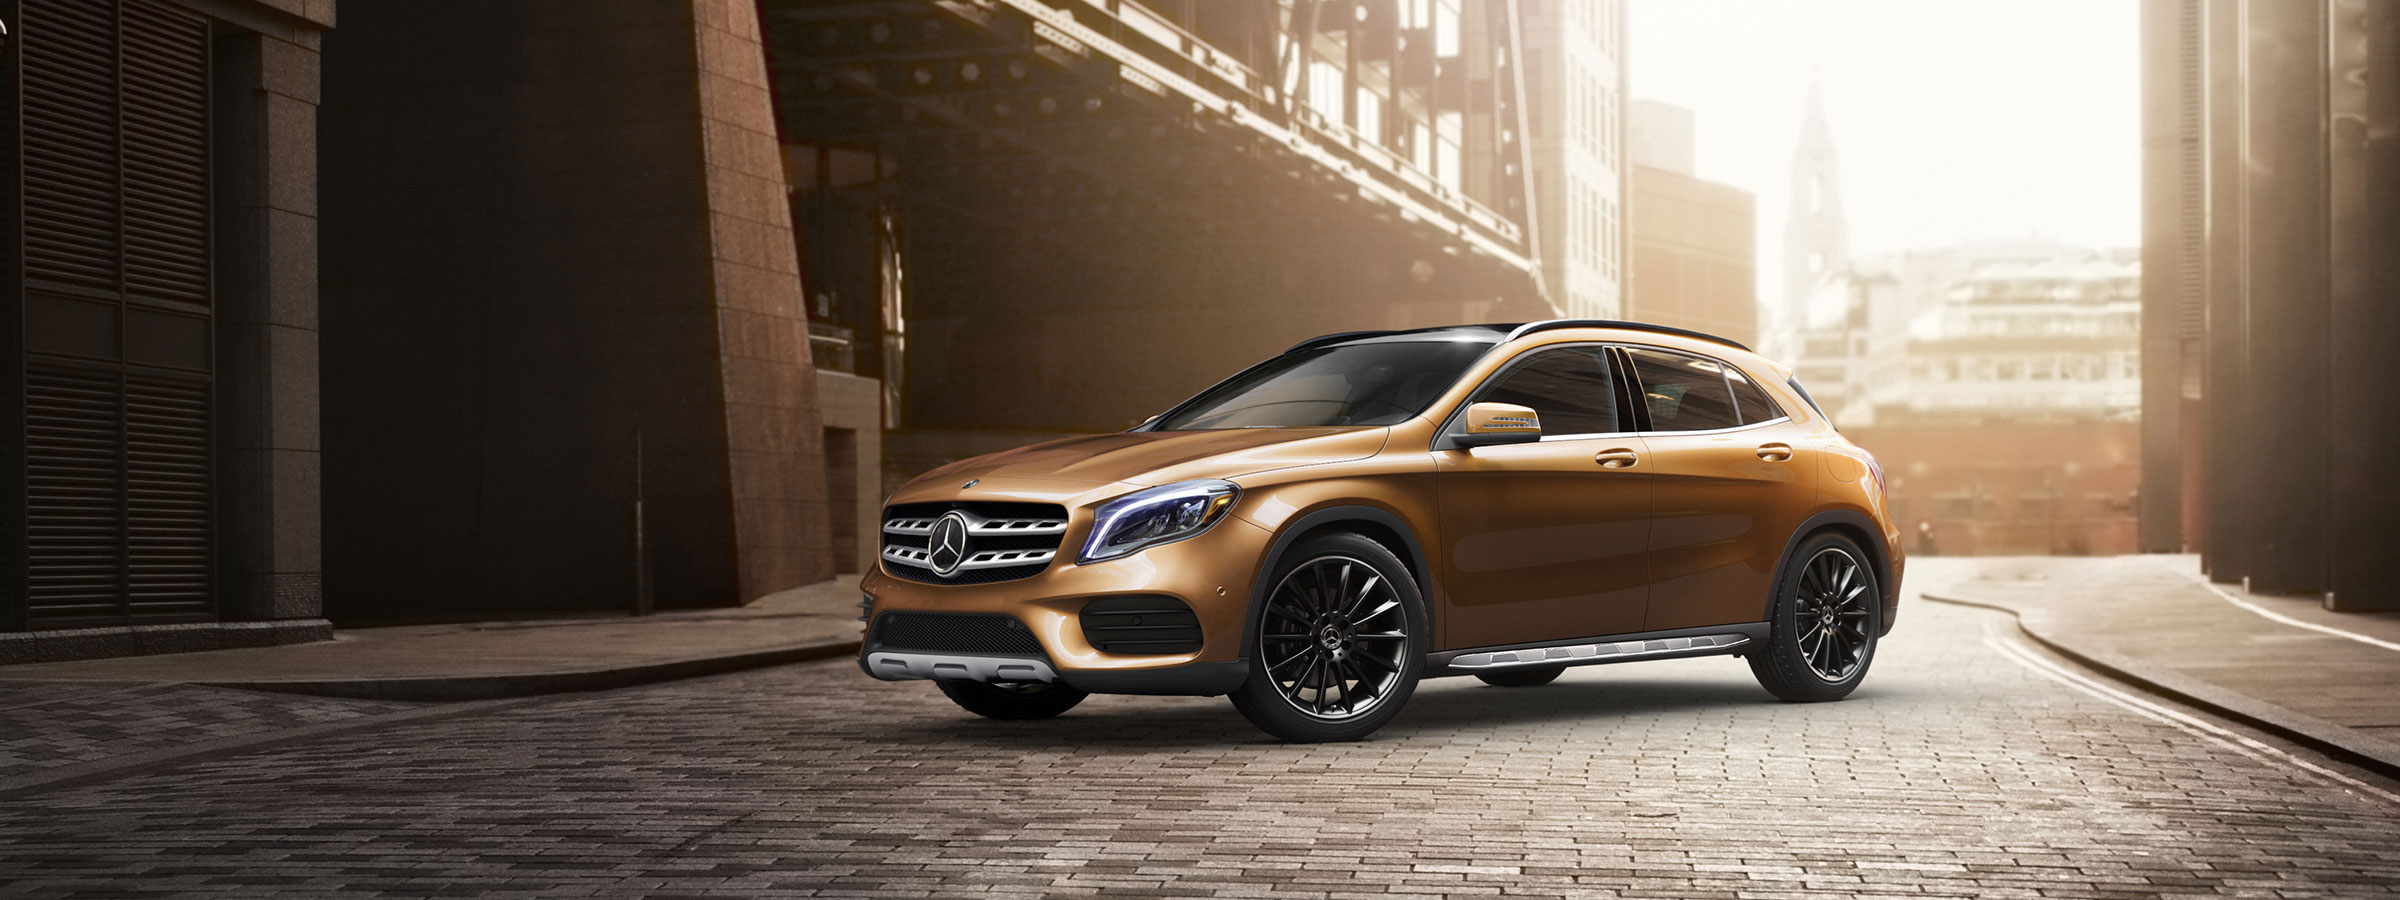 Mercedes Benz Certified Pre Owned >> 2018 GLA SUV | Mercedes-Benz